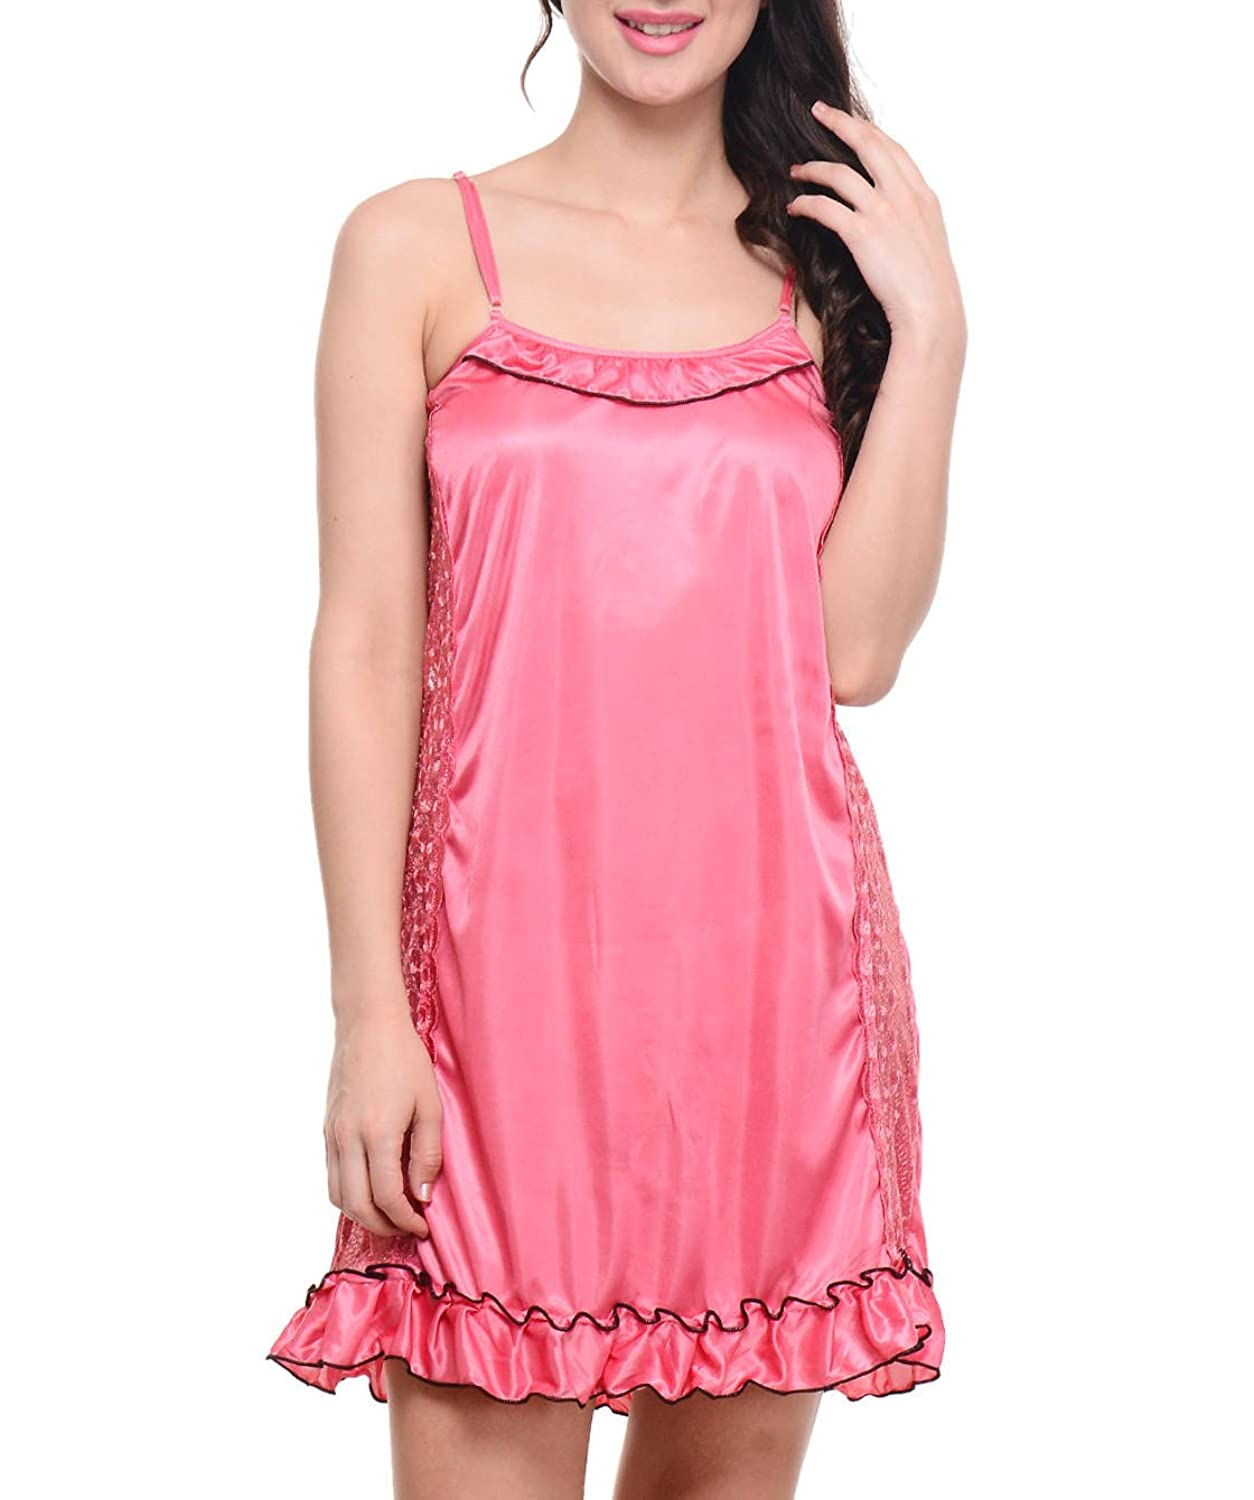 Myntra offers you a vast range of night dresses online from the warm and cosy to the uber sensual night dress, it's all there online at Myntra. Get crazy with your girl gang at a sleepover and click away photos for your scrapbook in flannel night dresses for girls by N-Gal, Camey or Pretty Secrets that have colourful animated prints on them.